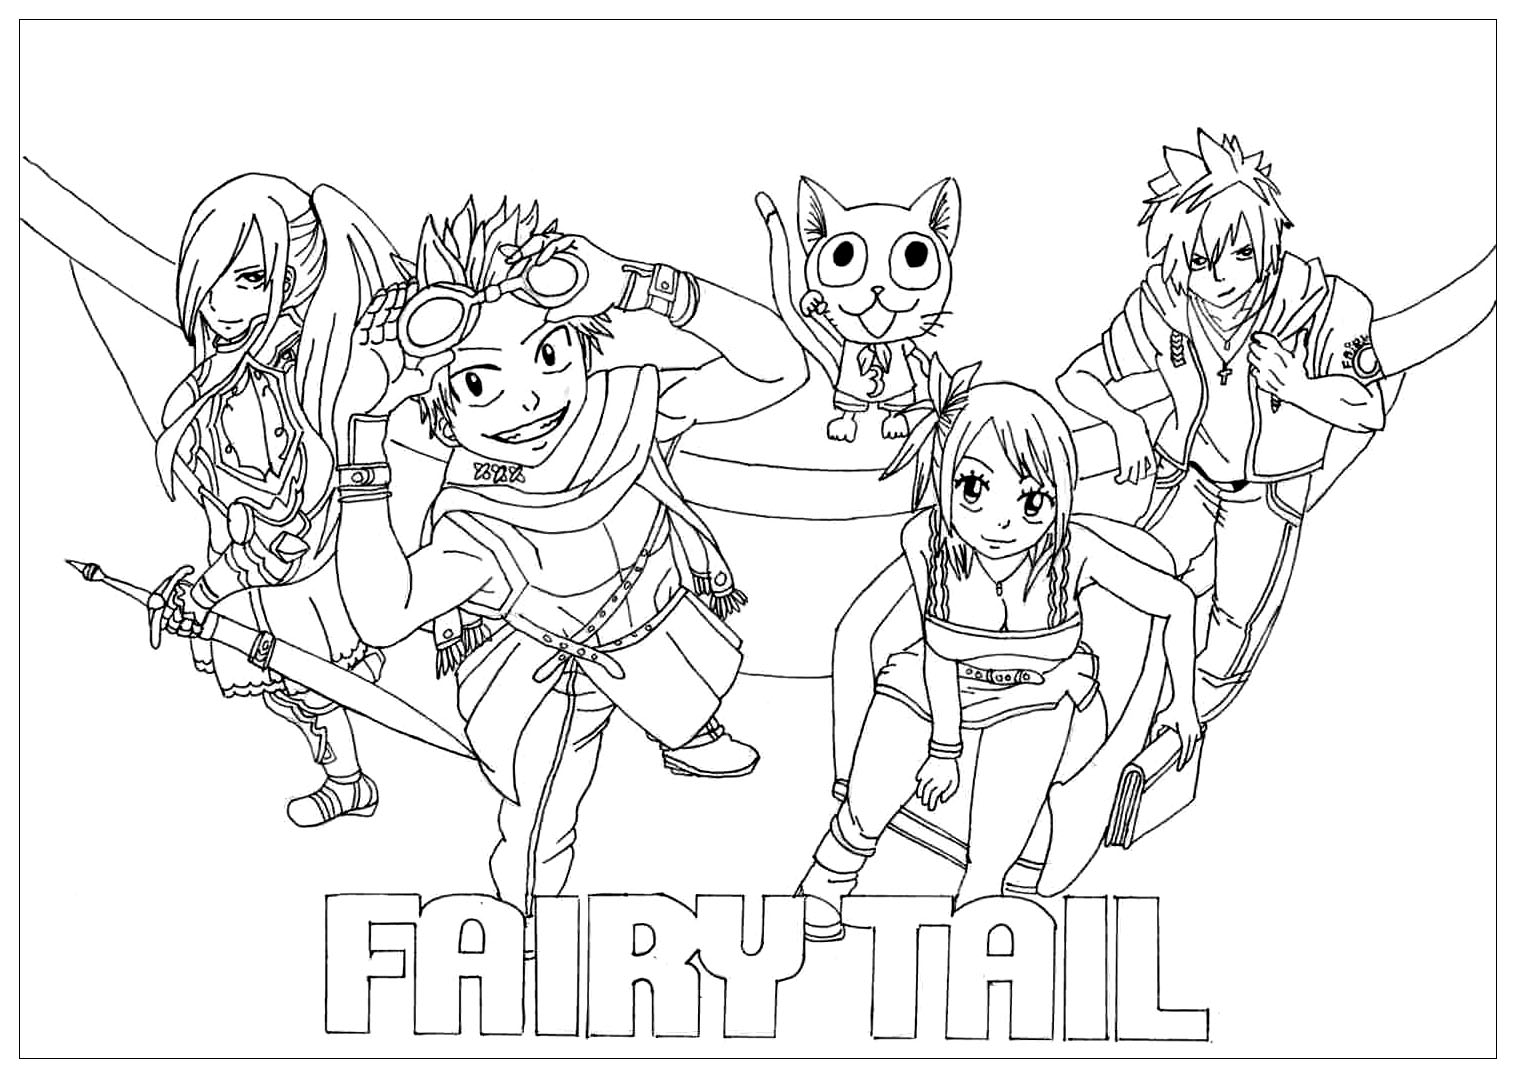 FREE* Fairy Tale Colouring/Coloring Pages by Cool Classroom Creations | 1078x1516